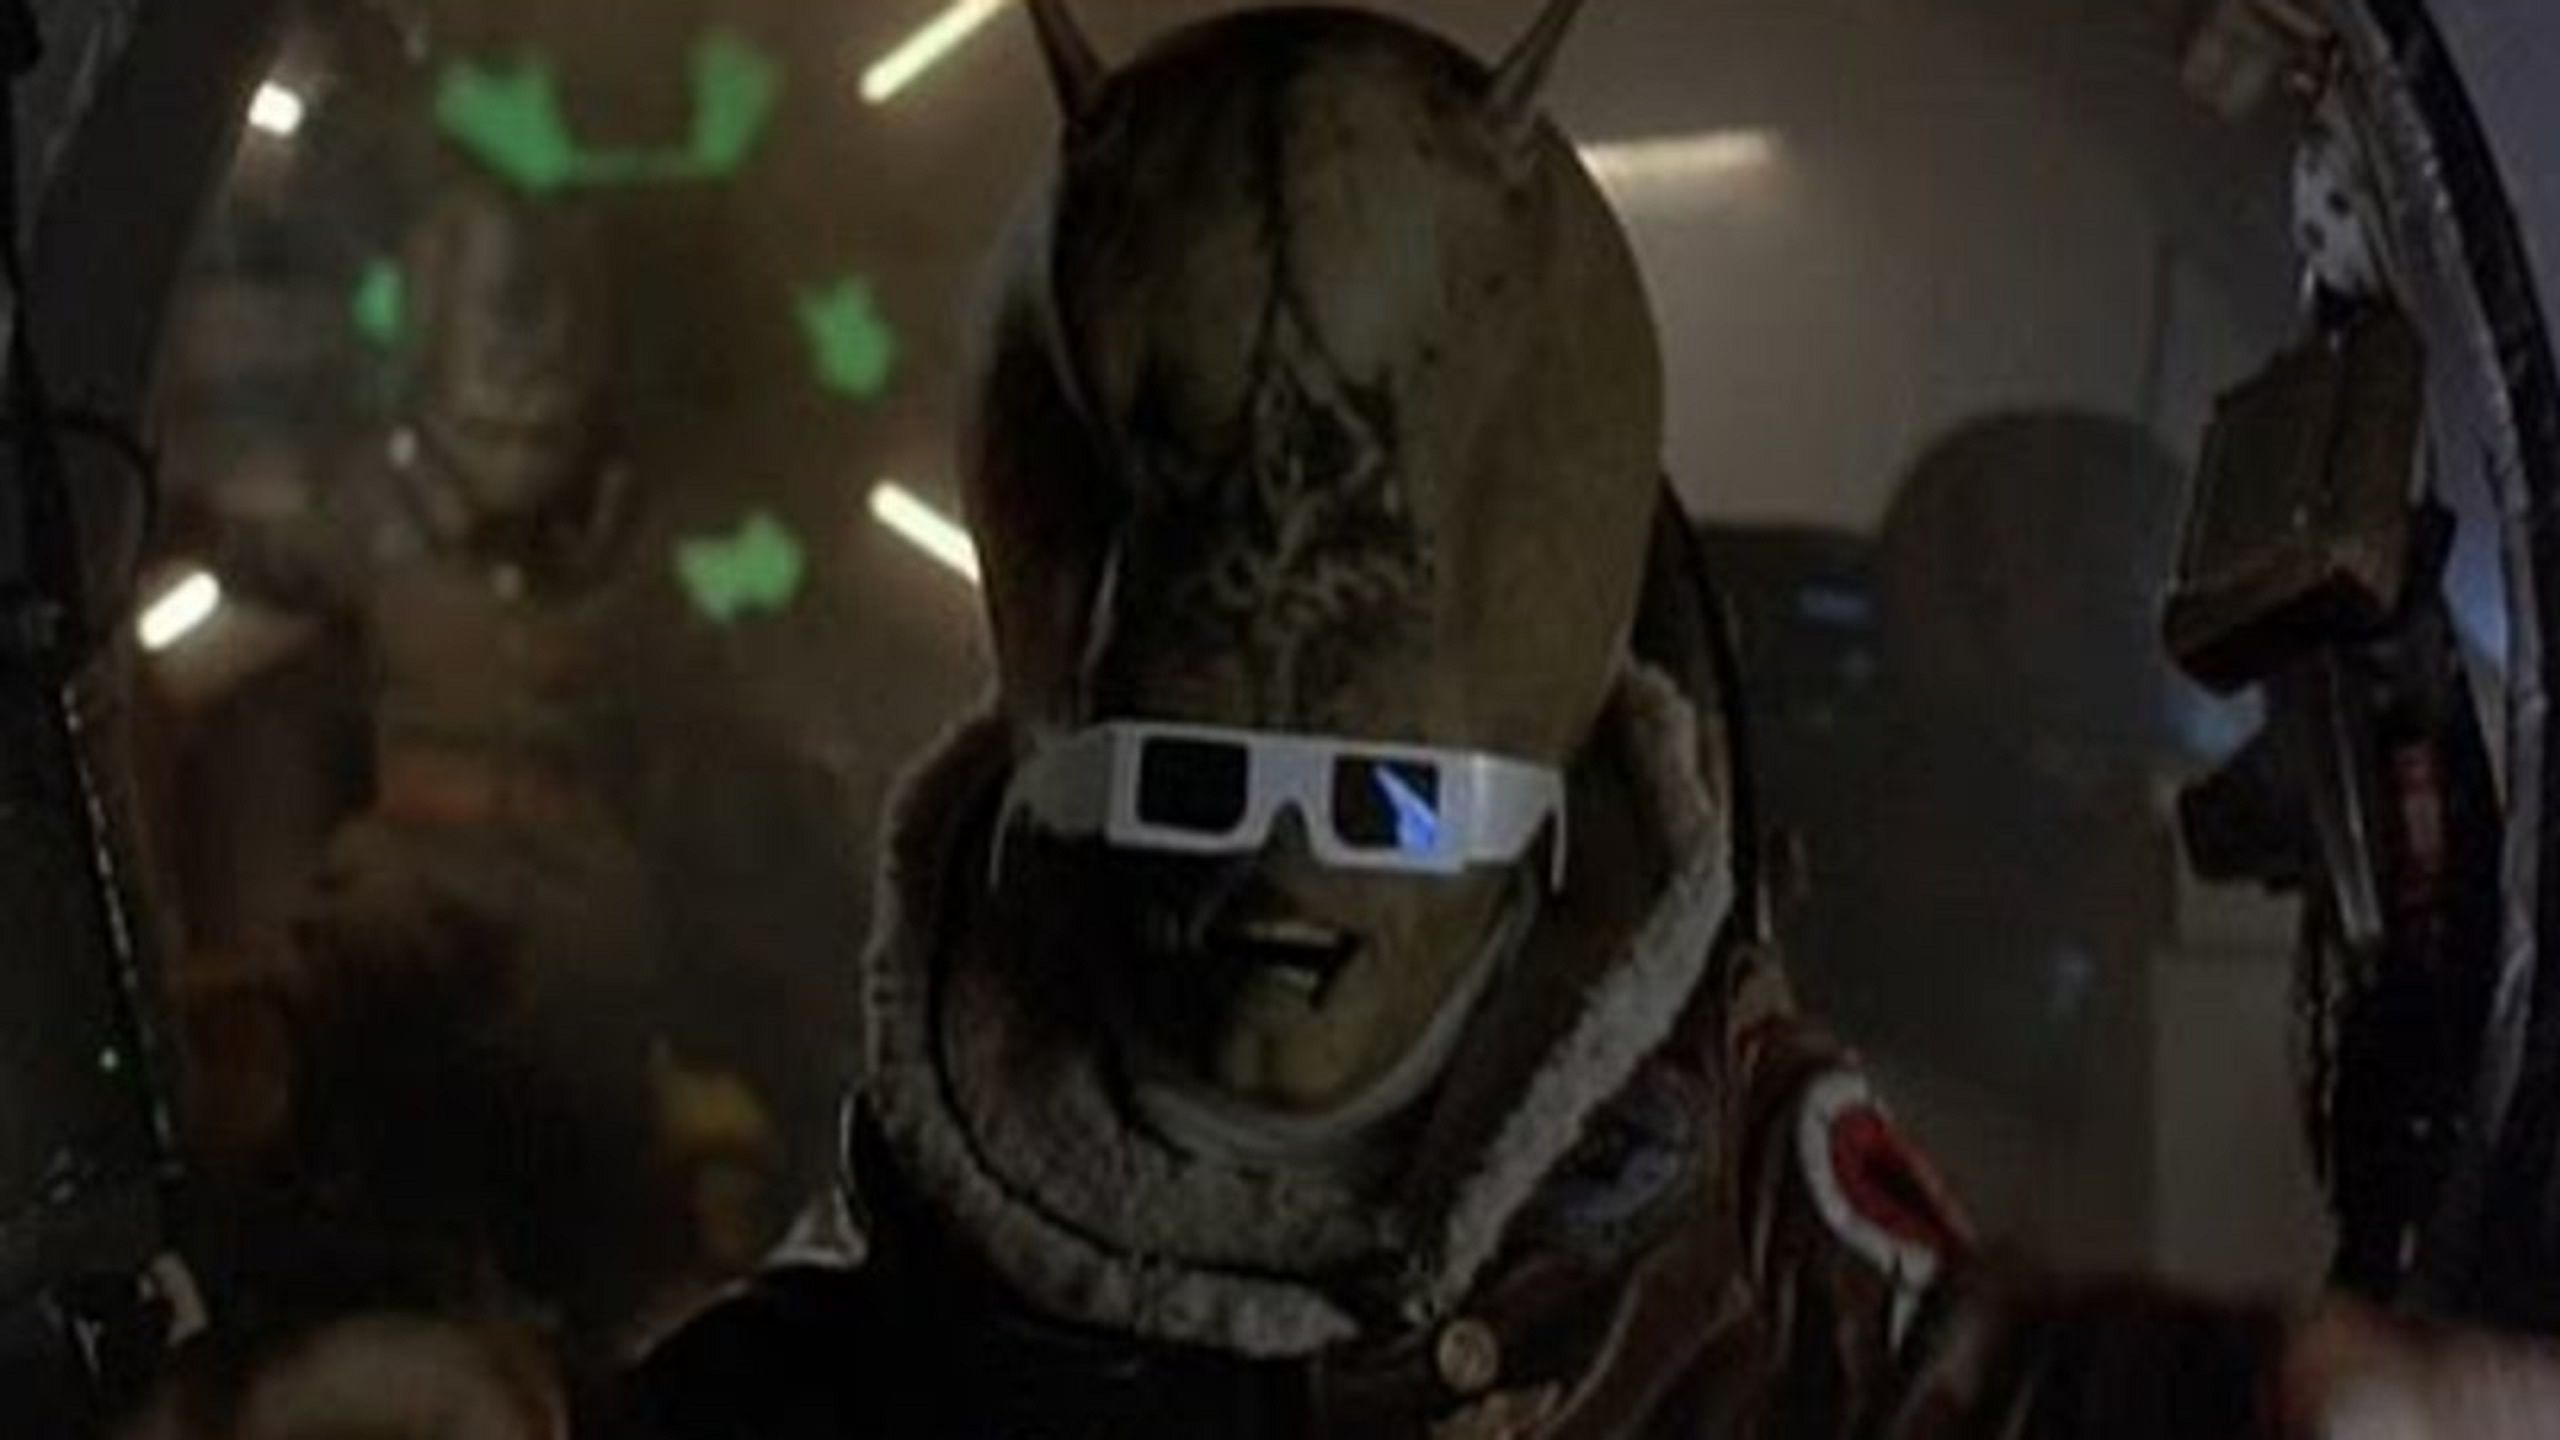 Spaced Invaders (1990) alien